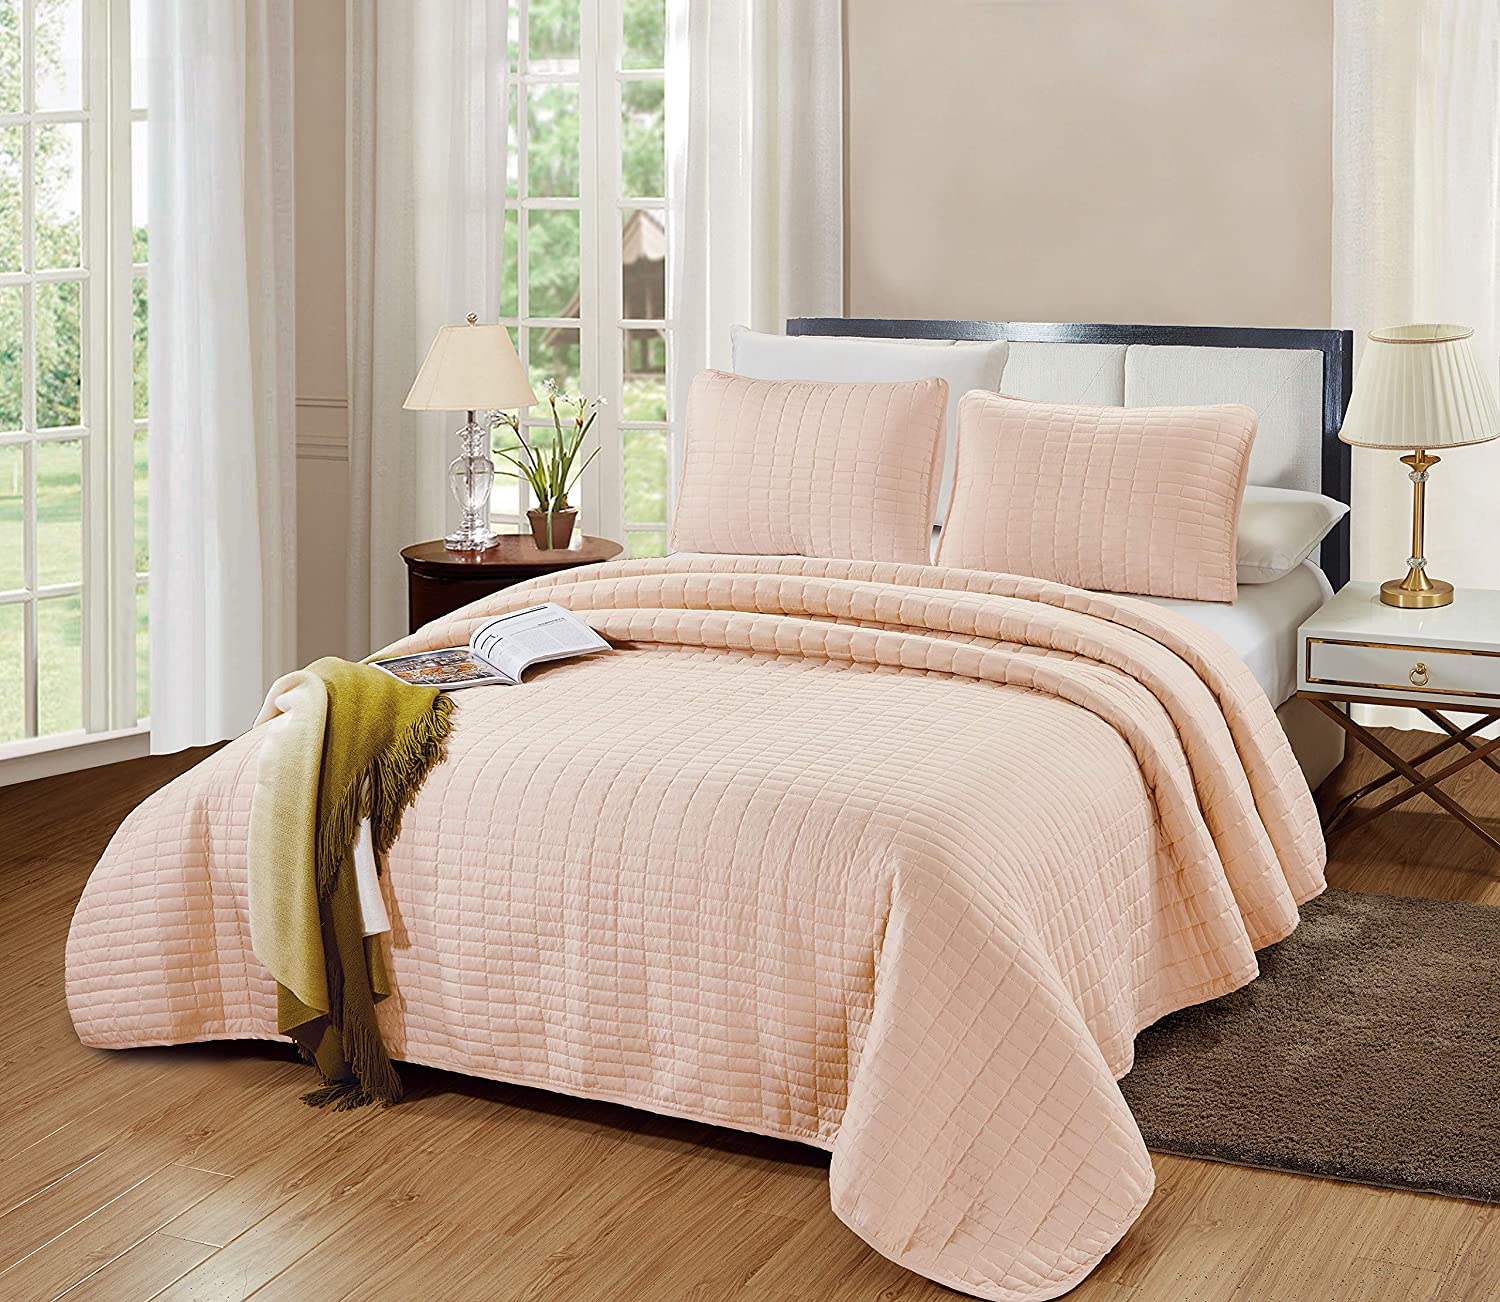 """GrandLinen 3-Piece Bedding Catena Quilt Set Solid Blush Pink Queen/Full Size 90"""" x 90"""" Bedspread with 2 Pillow Shams - Rectangle Box Pattern Soft Microfiber Coverlet"""